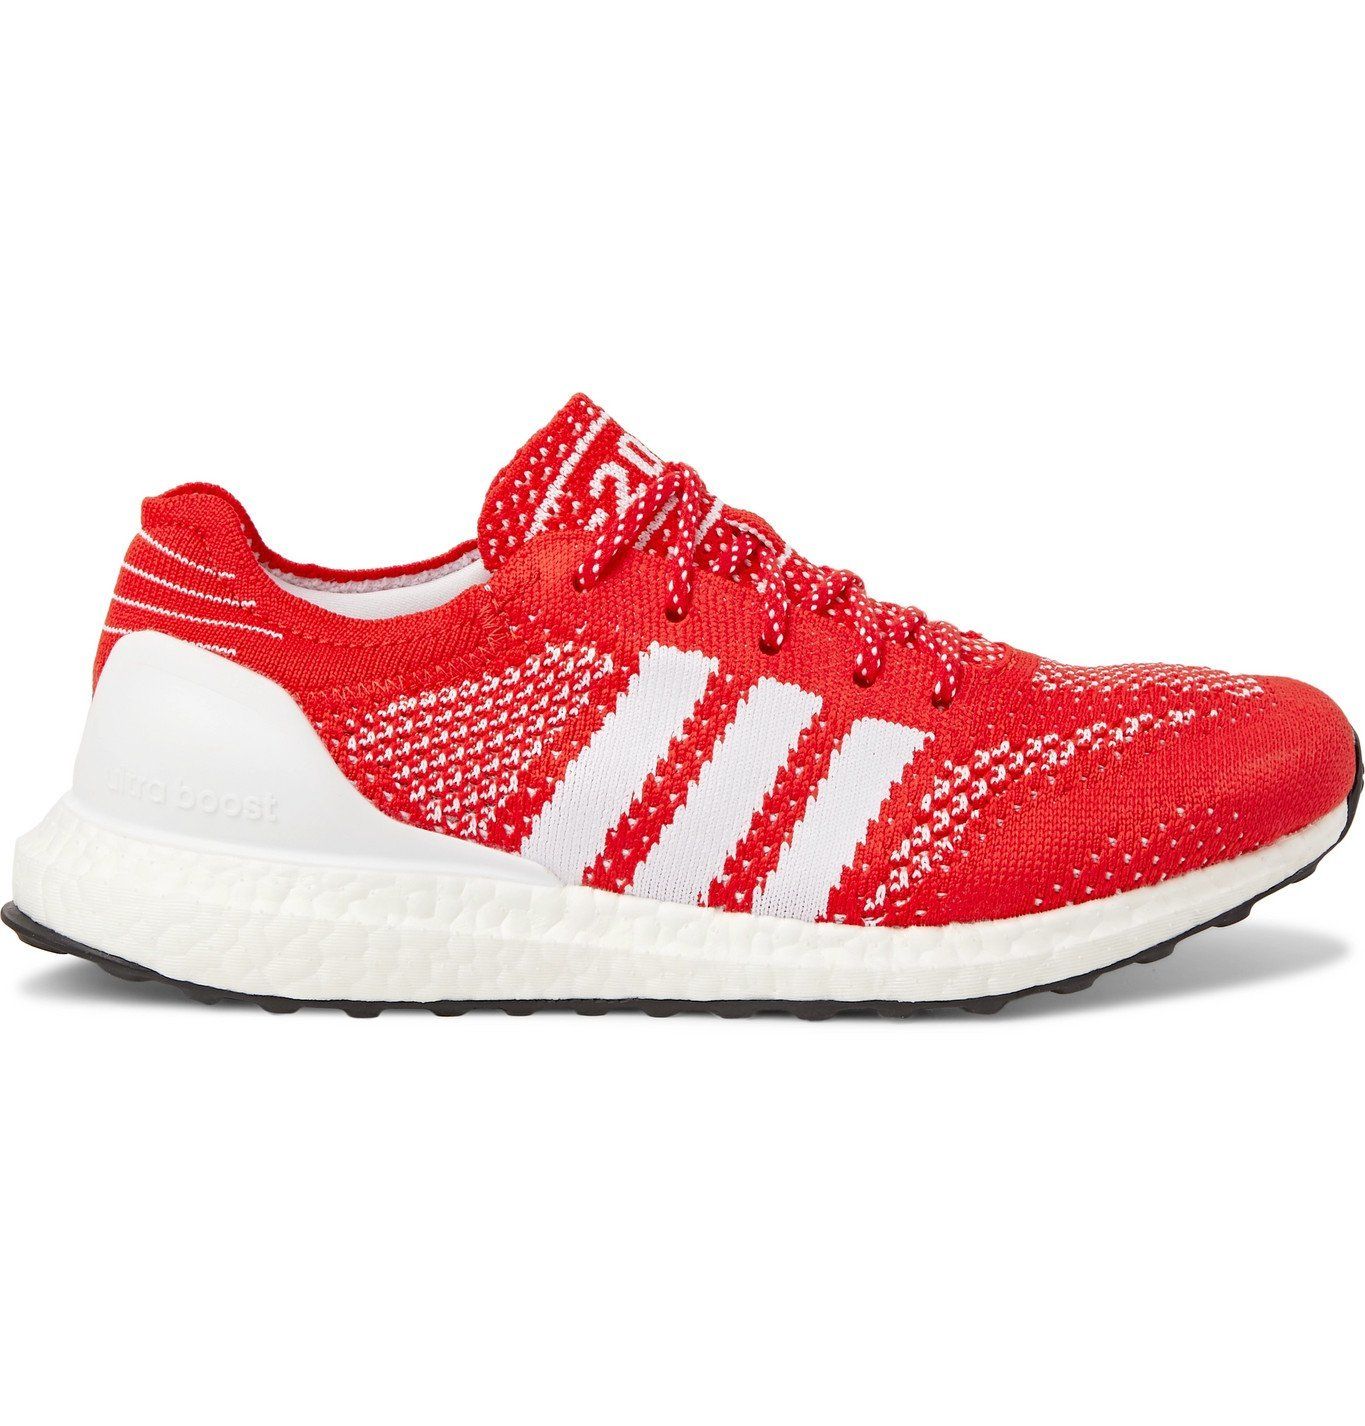 Photo: Adidas Sport - Parley UltraBOOST DNA Prime Rubber-Trimmed Primeknit Running Sneakers - Red